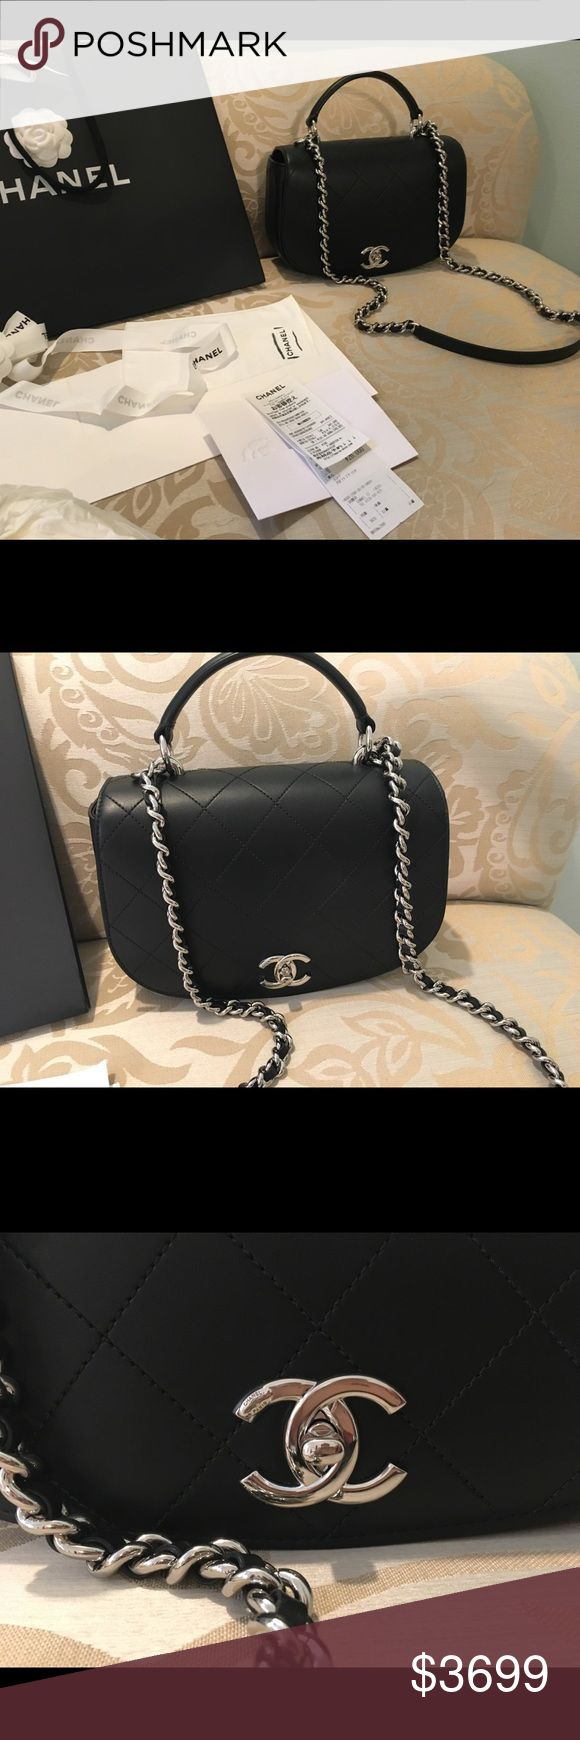 Chanel Brand New with tags bag! Brand new straight from Japan. With tags, box, receipts etc! CHANEL Bags